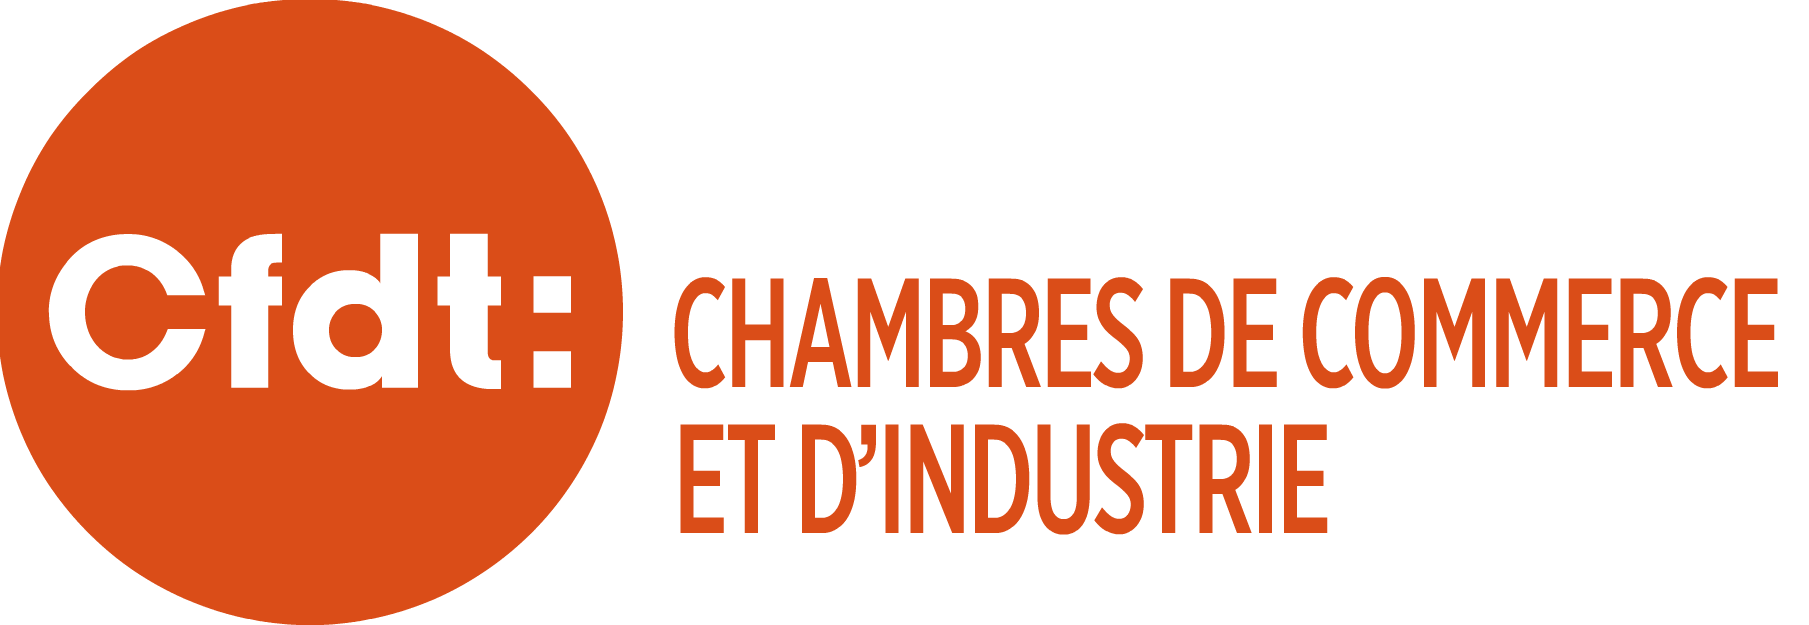 Chambre De Commerce Internationale Cfdt Cci Le Syndicat National Des Personnels Des Chambres De